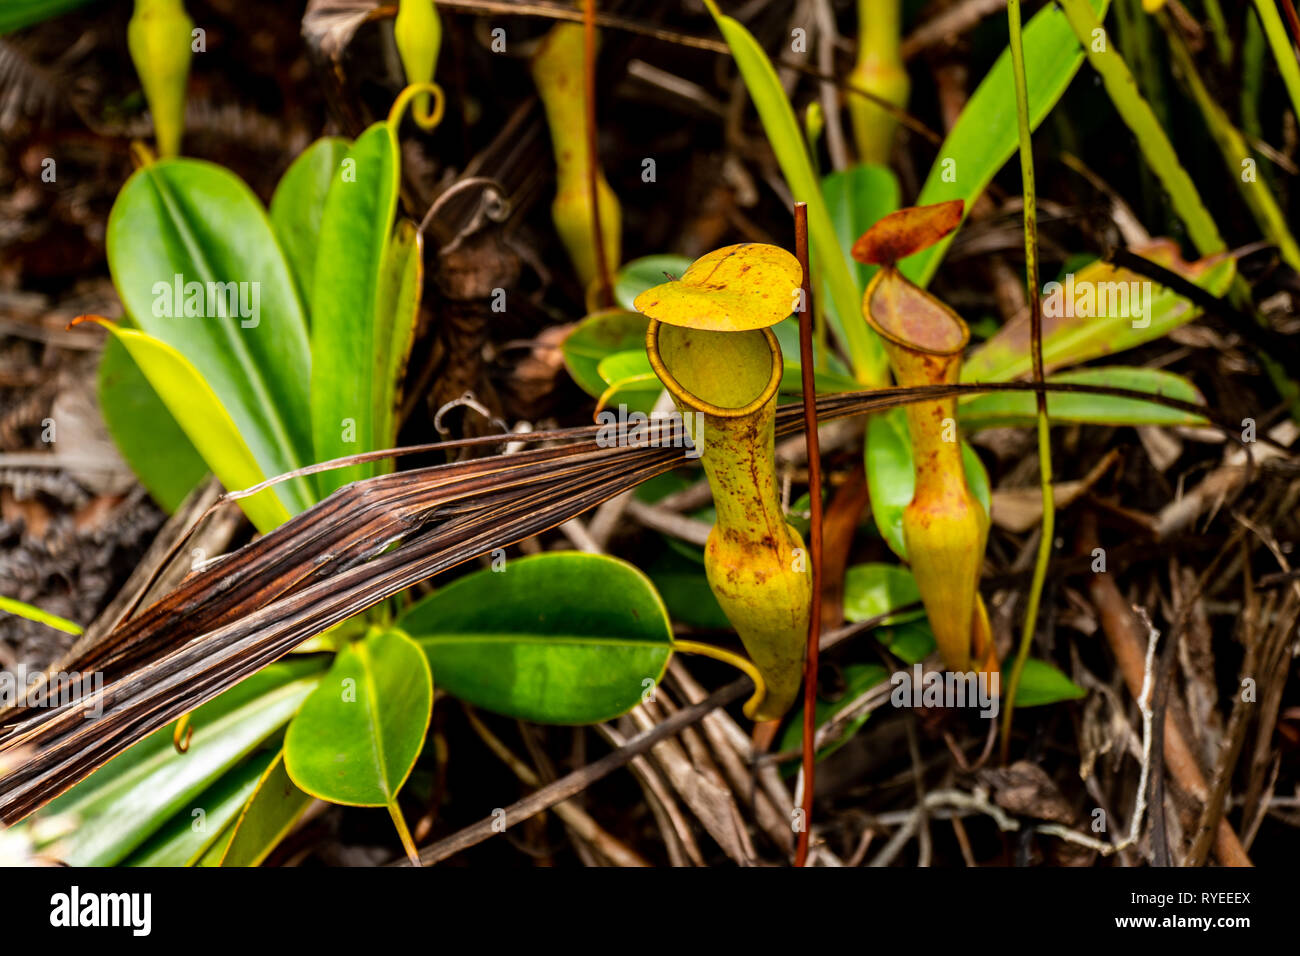 The urnlike insect trap of the carnivorous pitcher plant, Nepenthes pervillei. The pitcher (up to 30cm high) is an elaborate extension of the midrib o - Stock Image